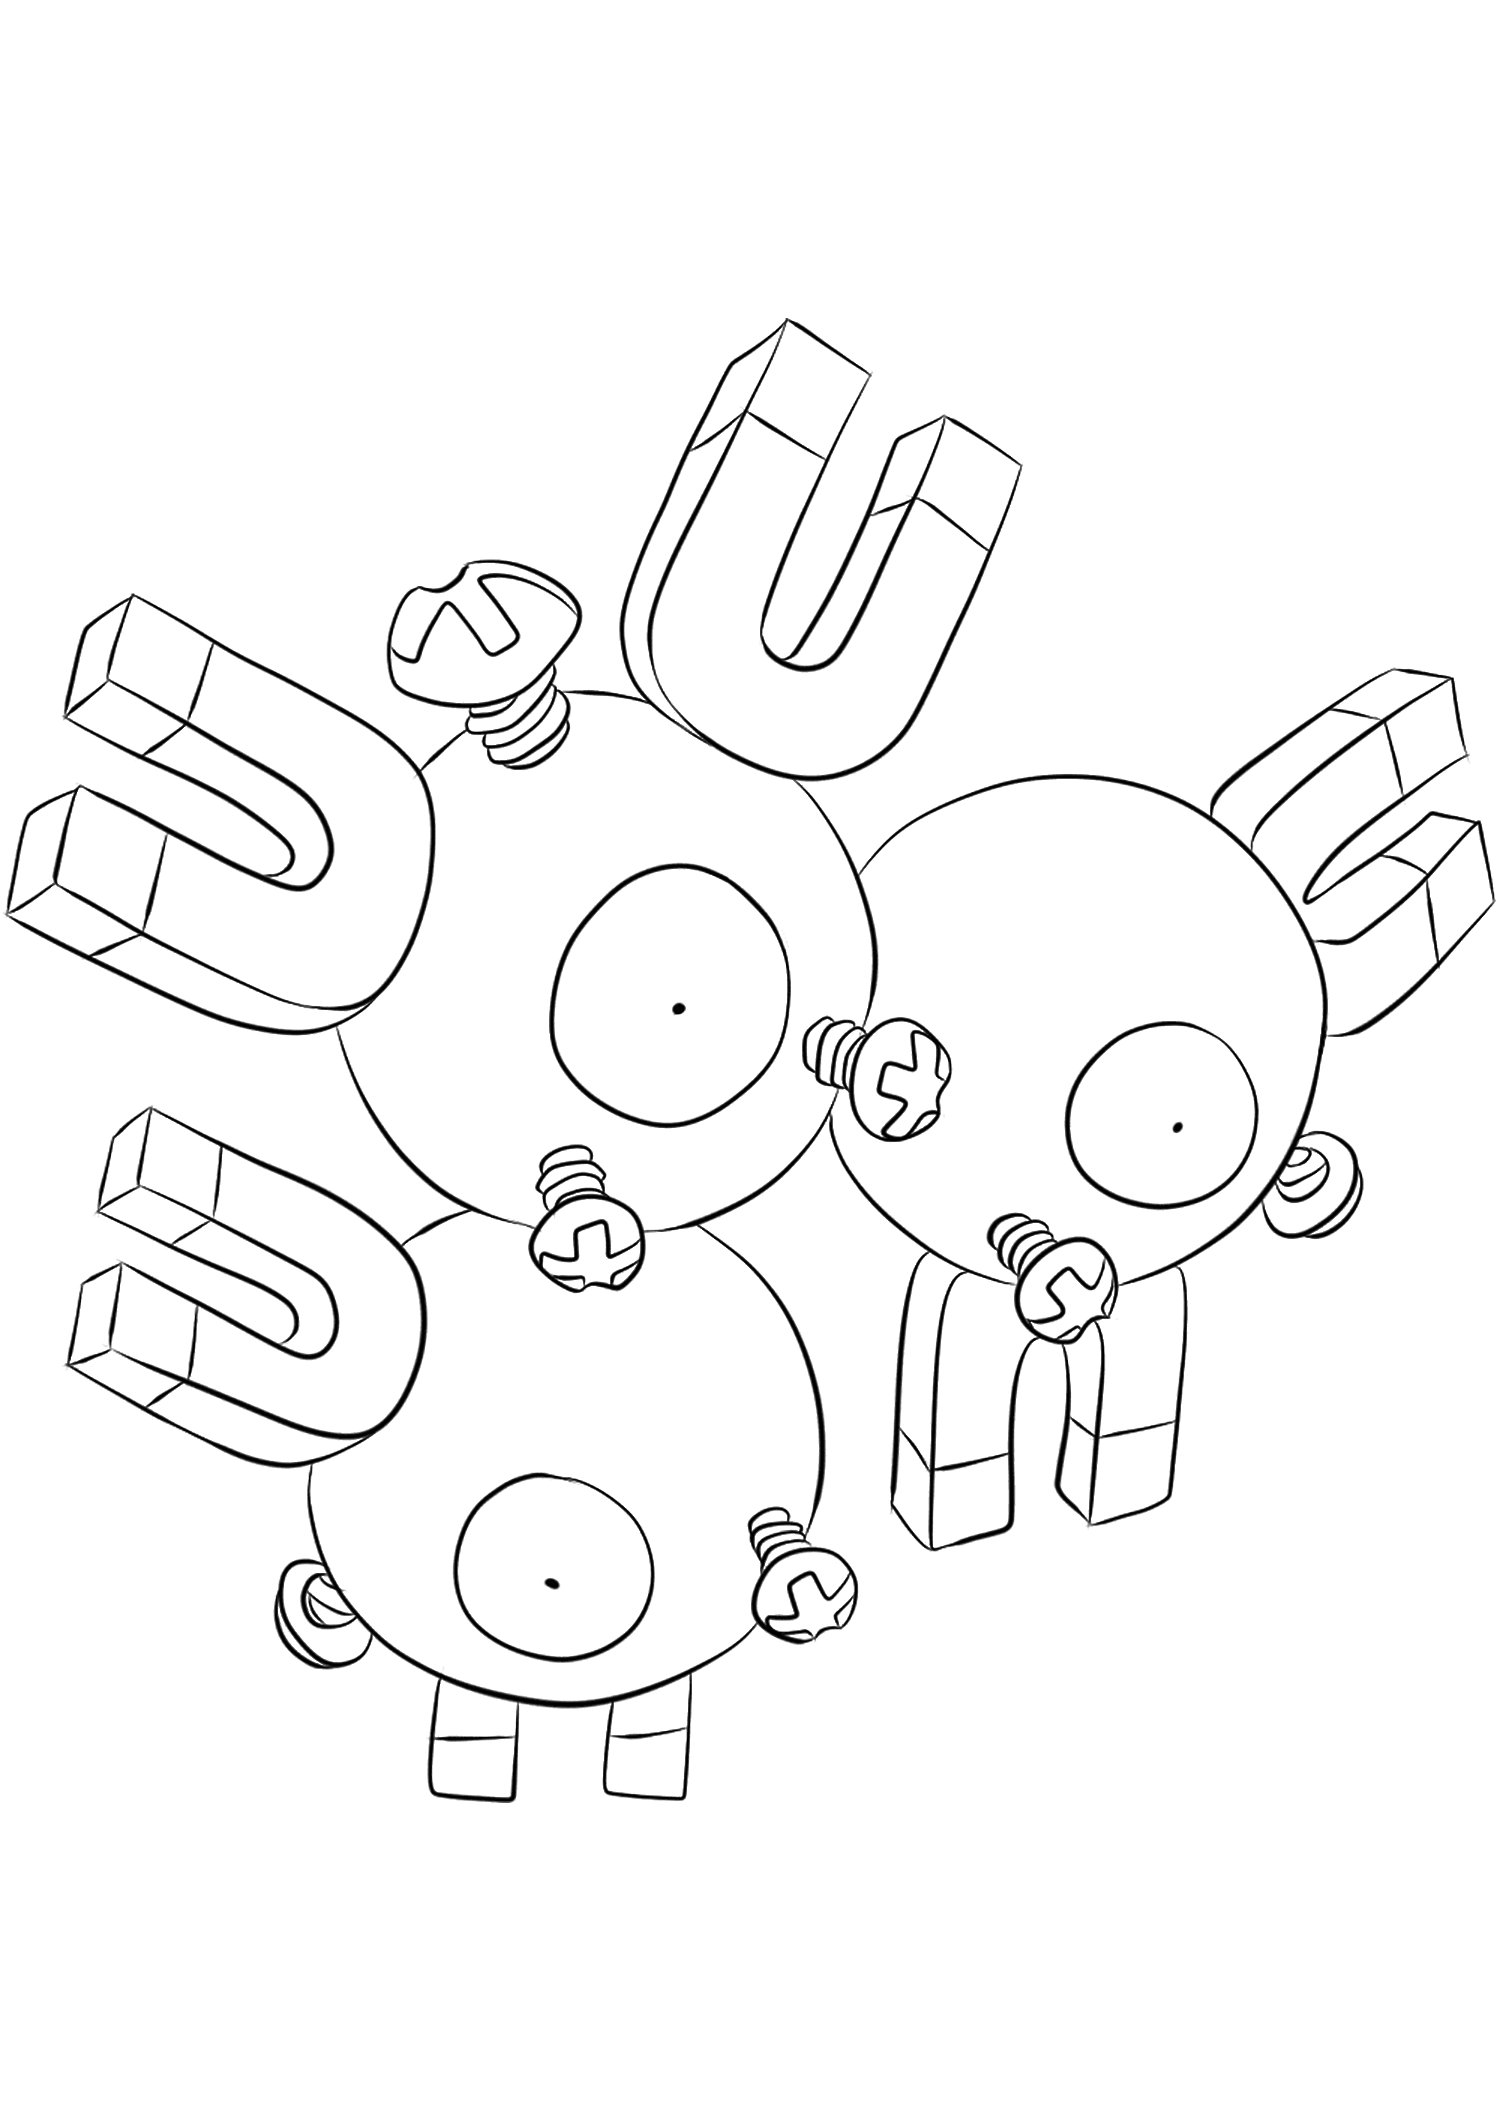 <b>Magneton</b> (No.82) : Pokemon (Generation I)